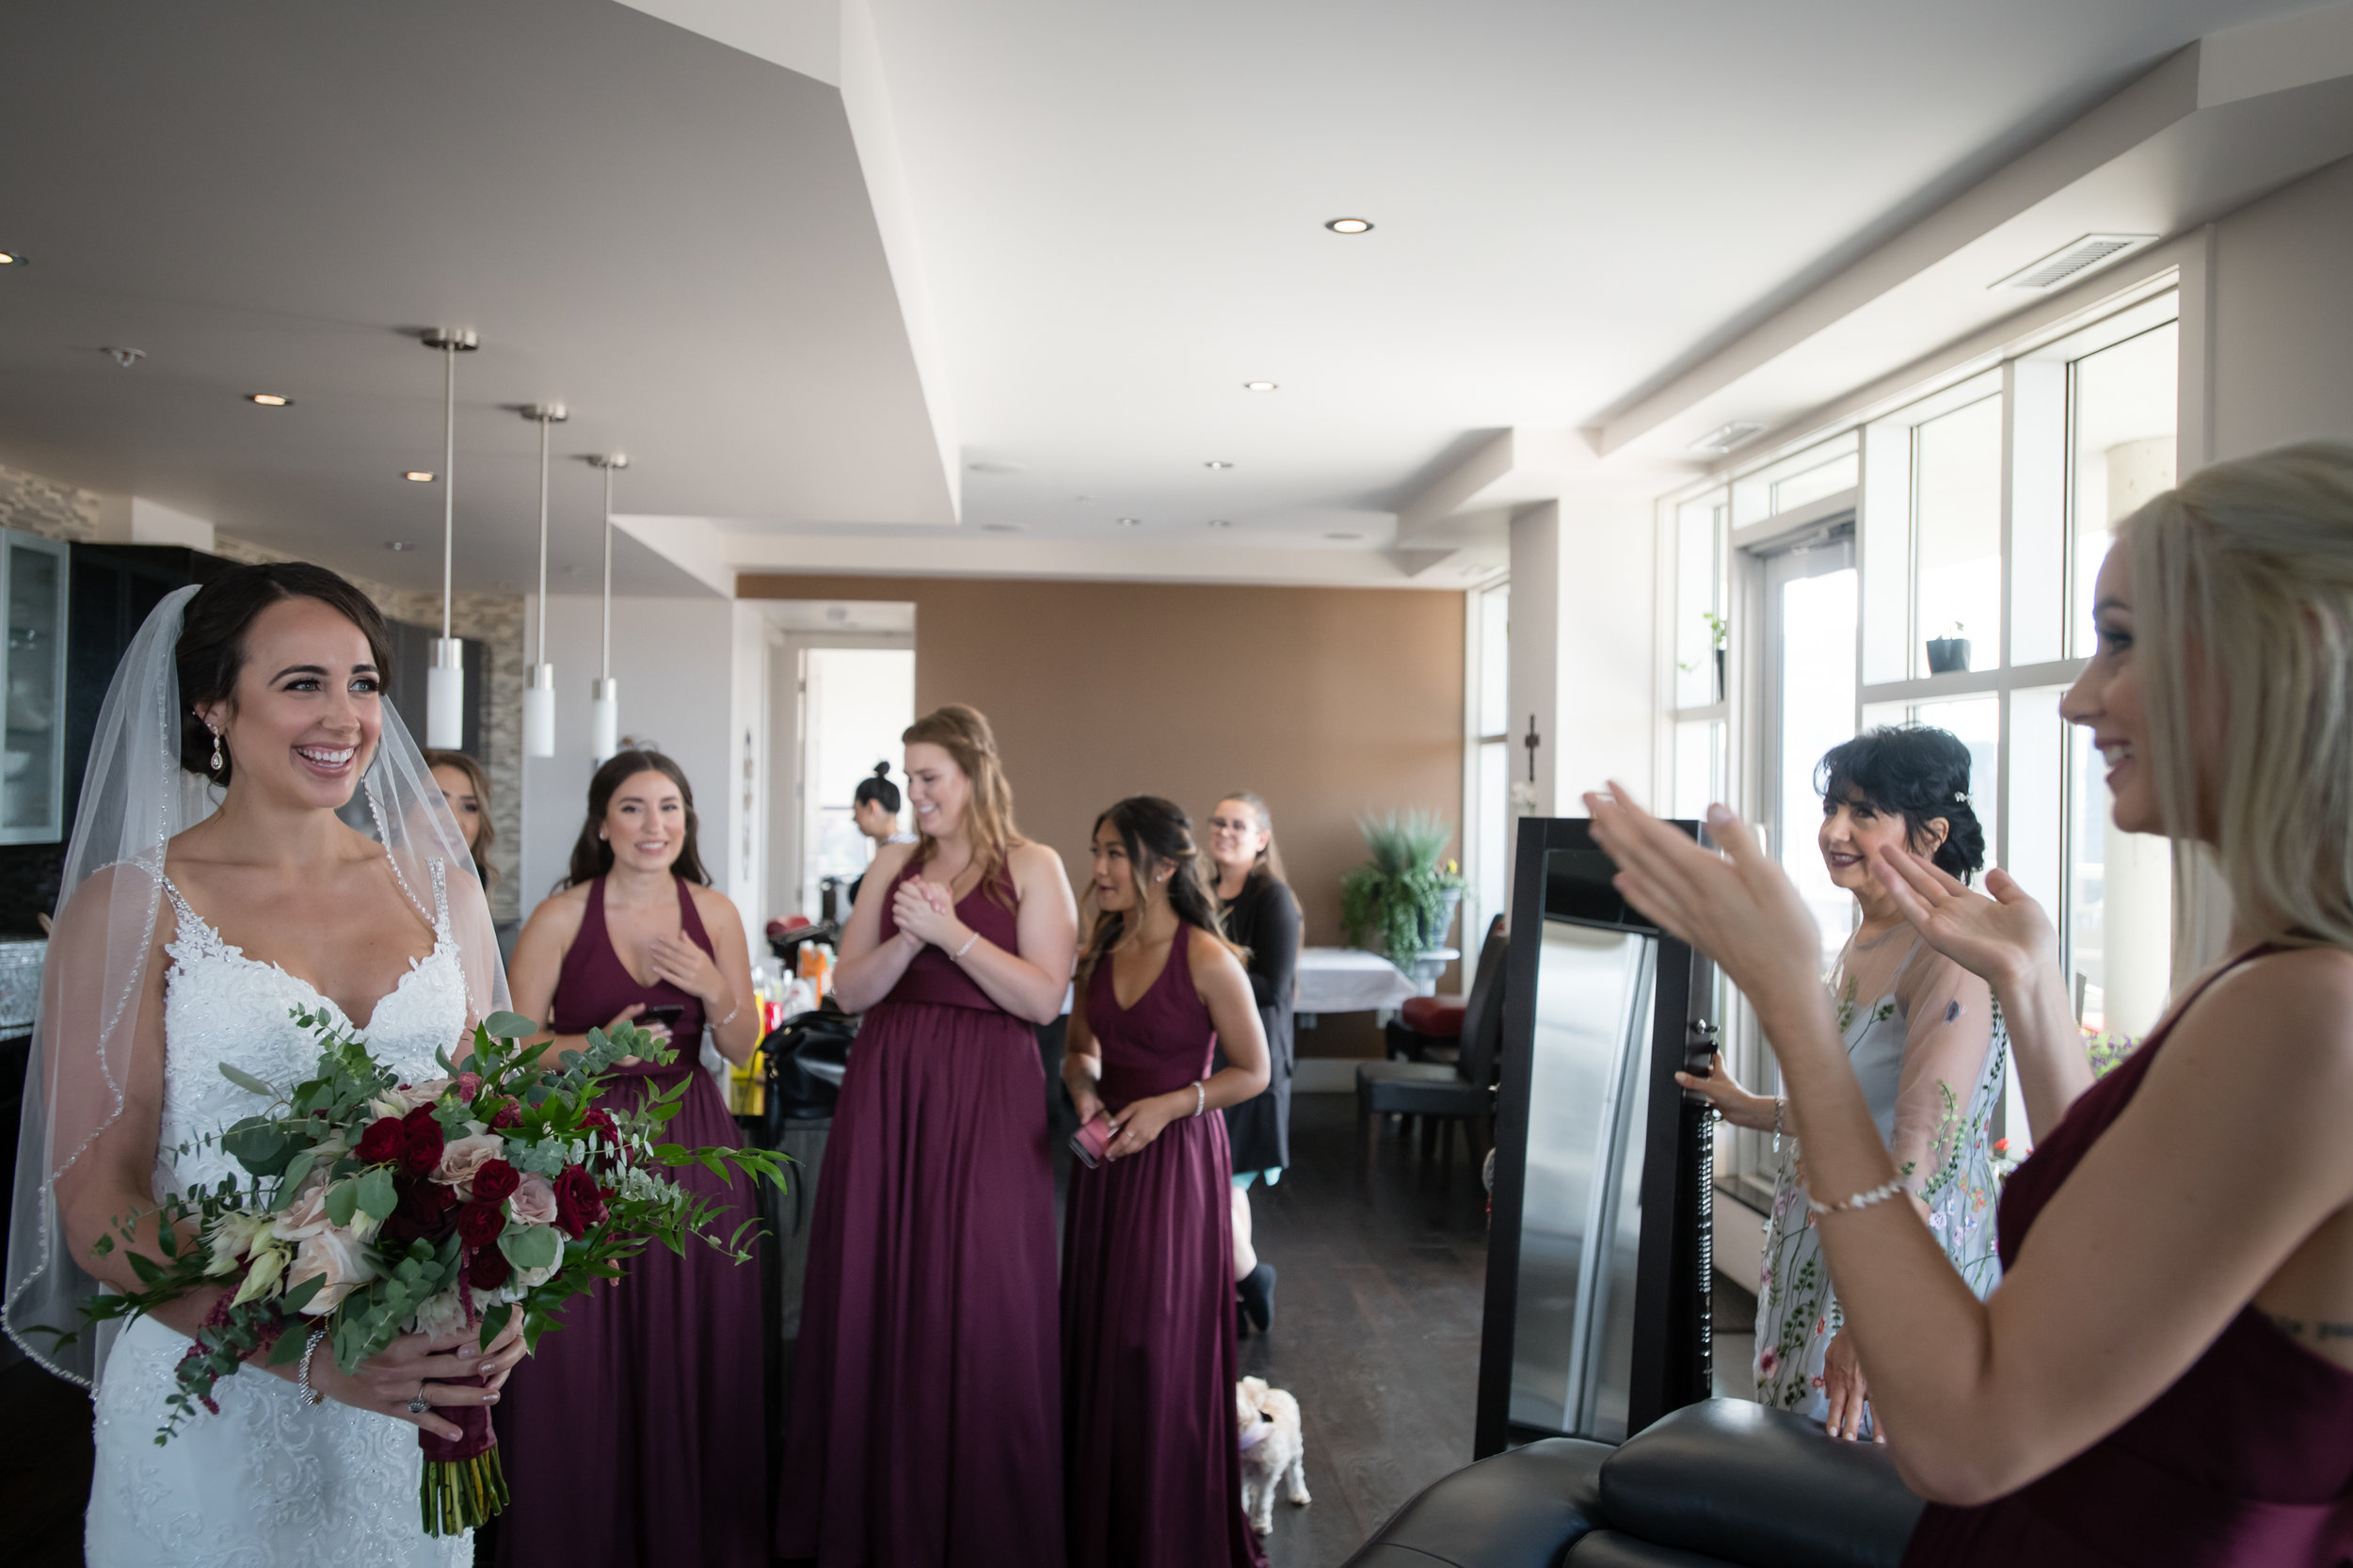 Laura_Danny_Wedding_Sneak_Peek_022.jpg